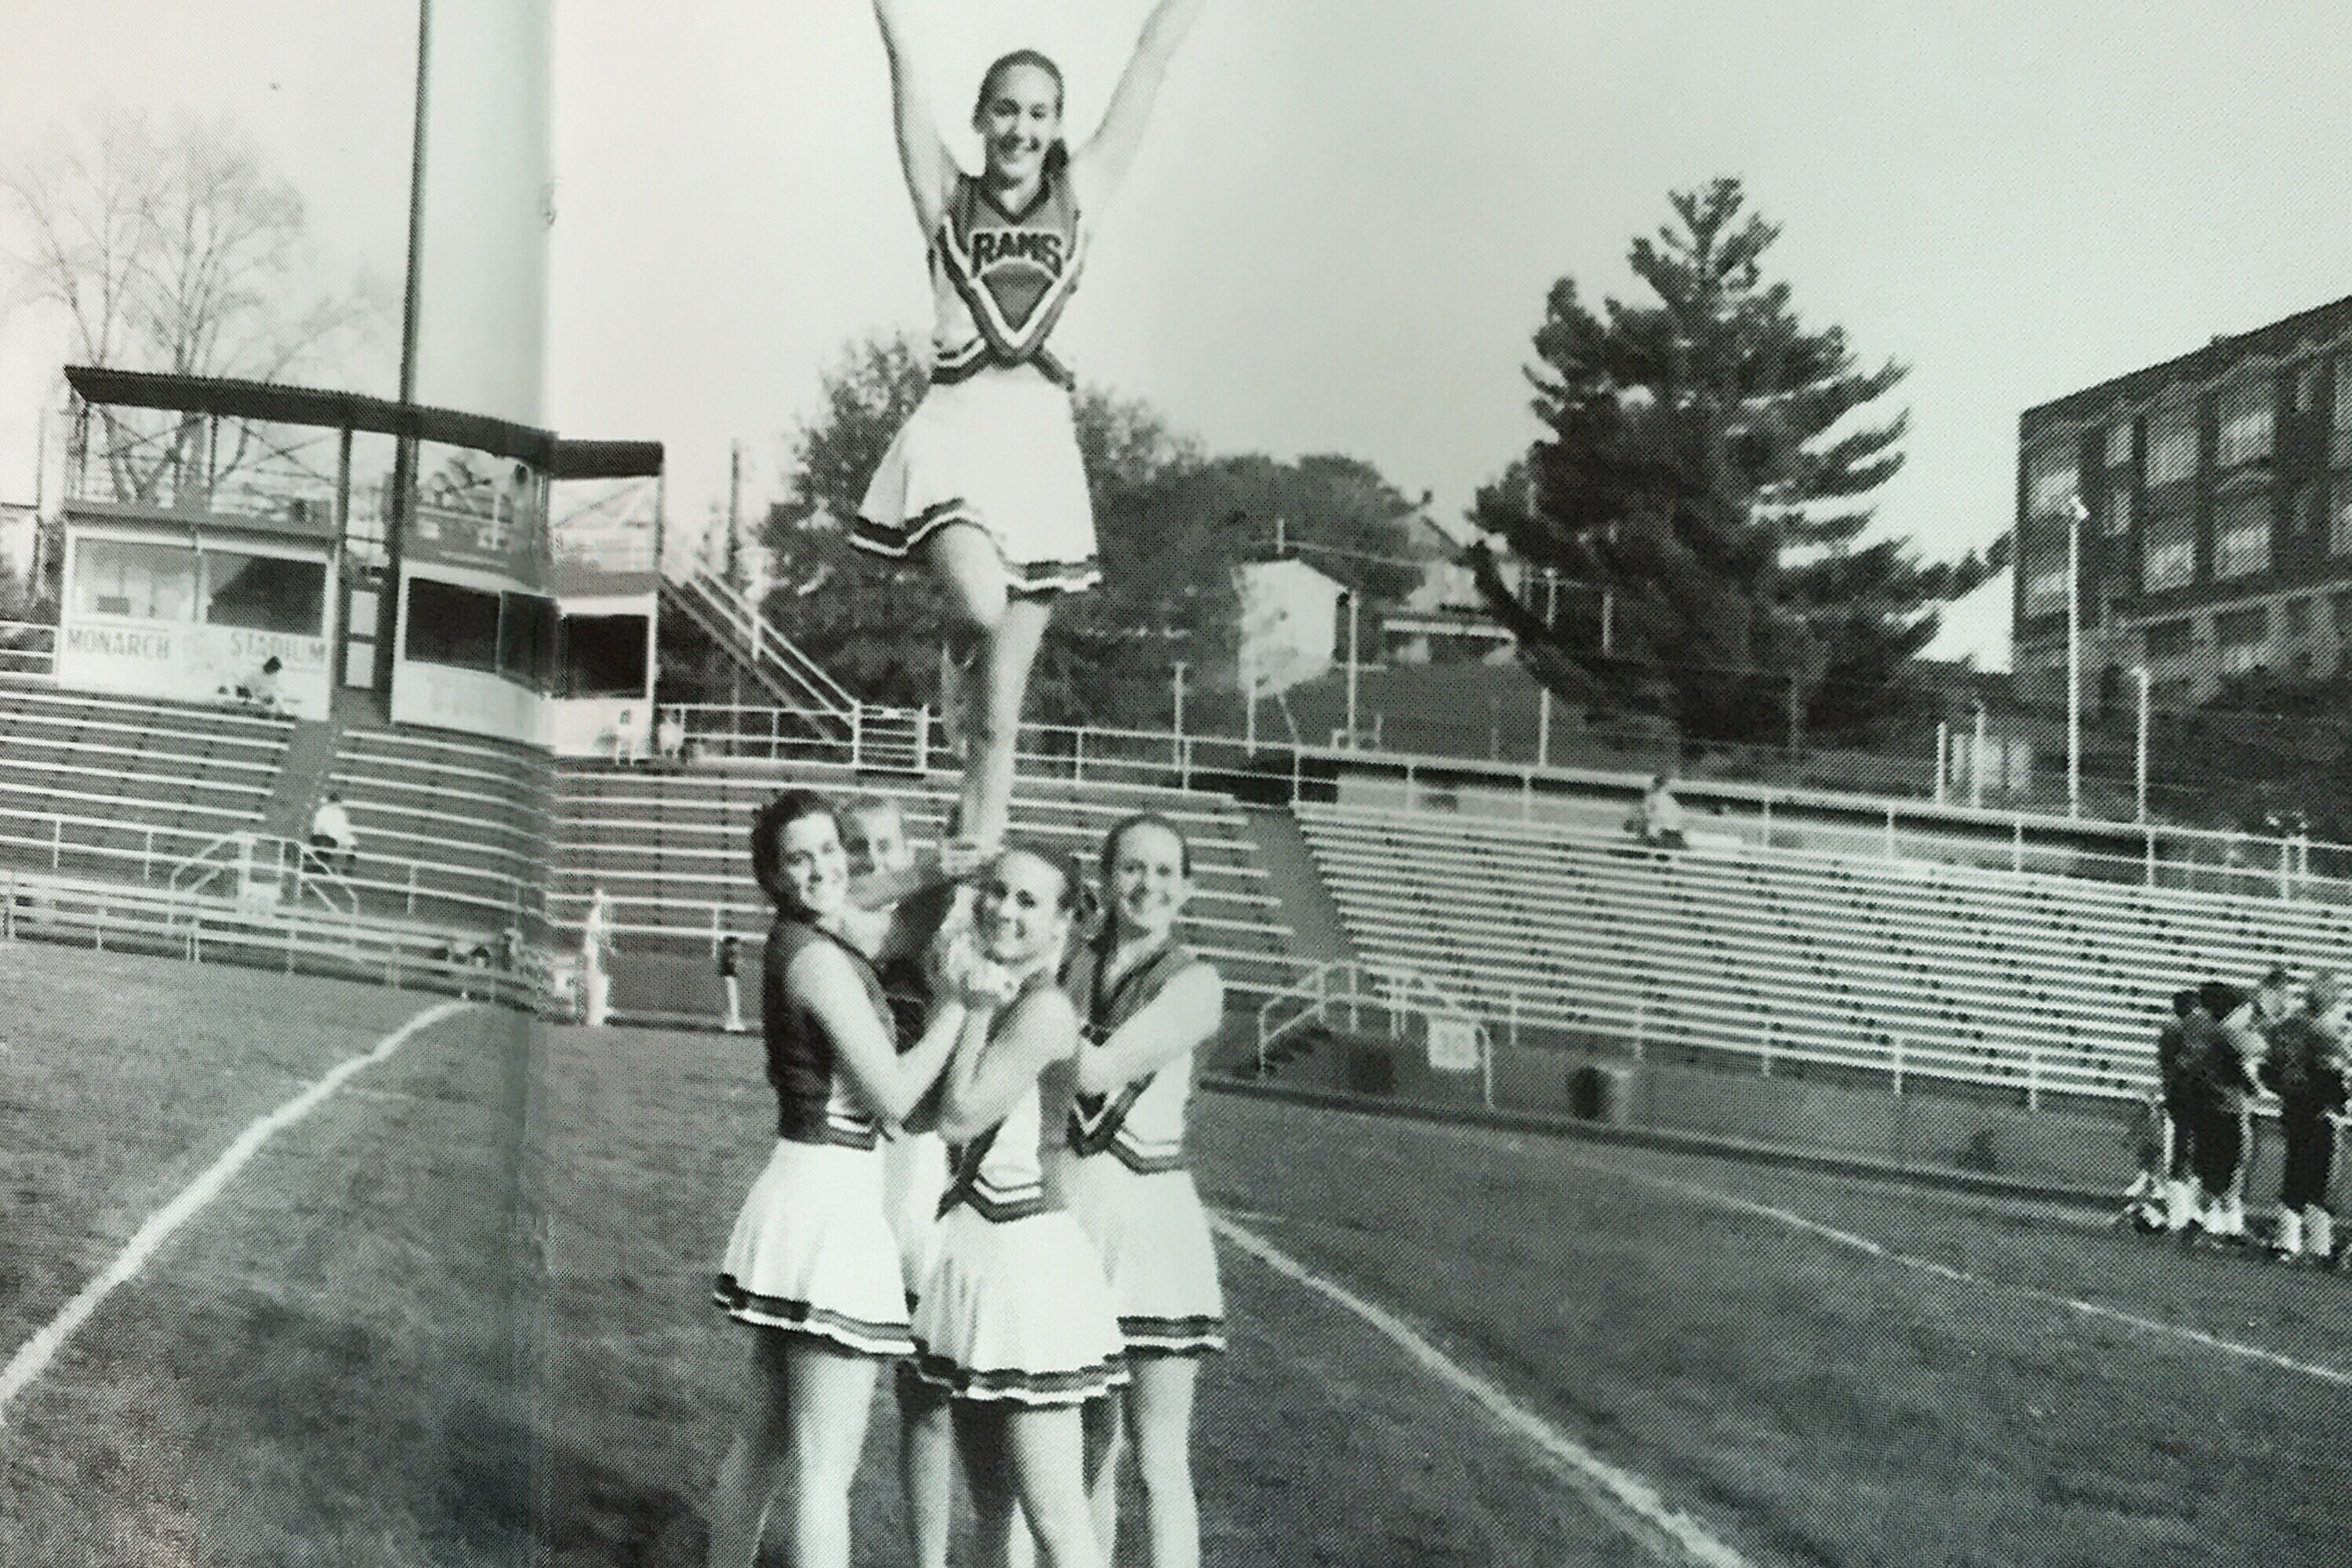 Cheerleading photo from my ninth grade yearbook. My pre-yoga days.